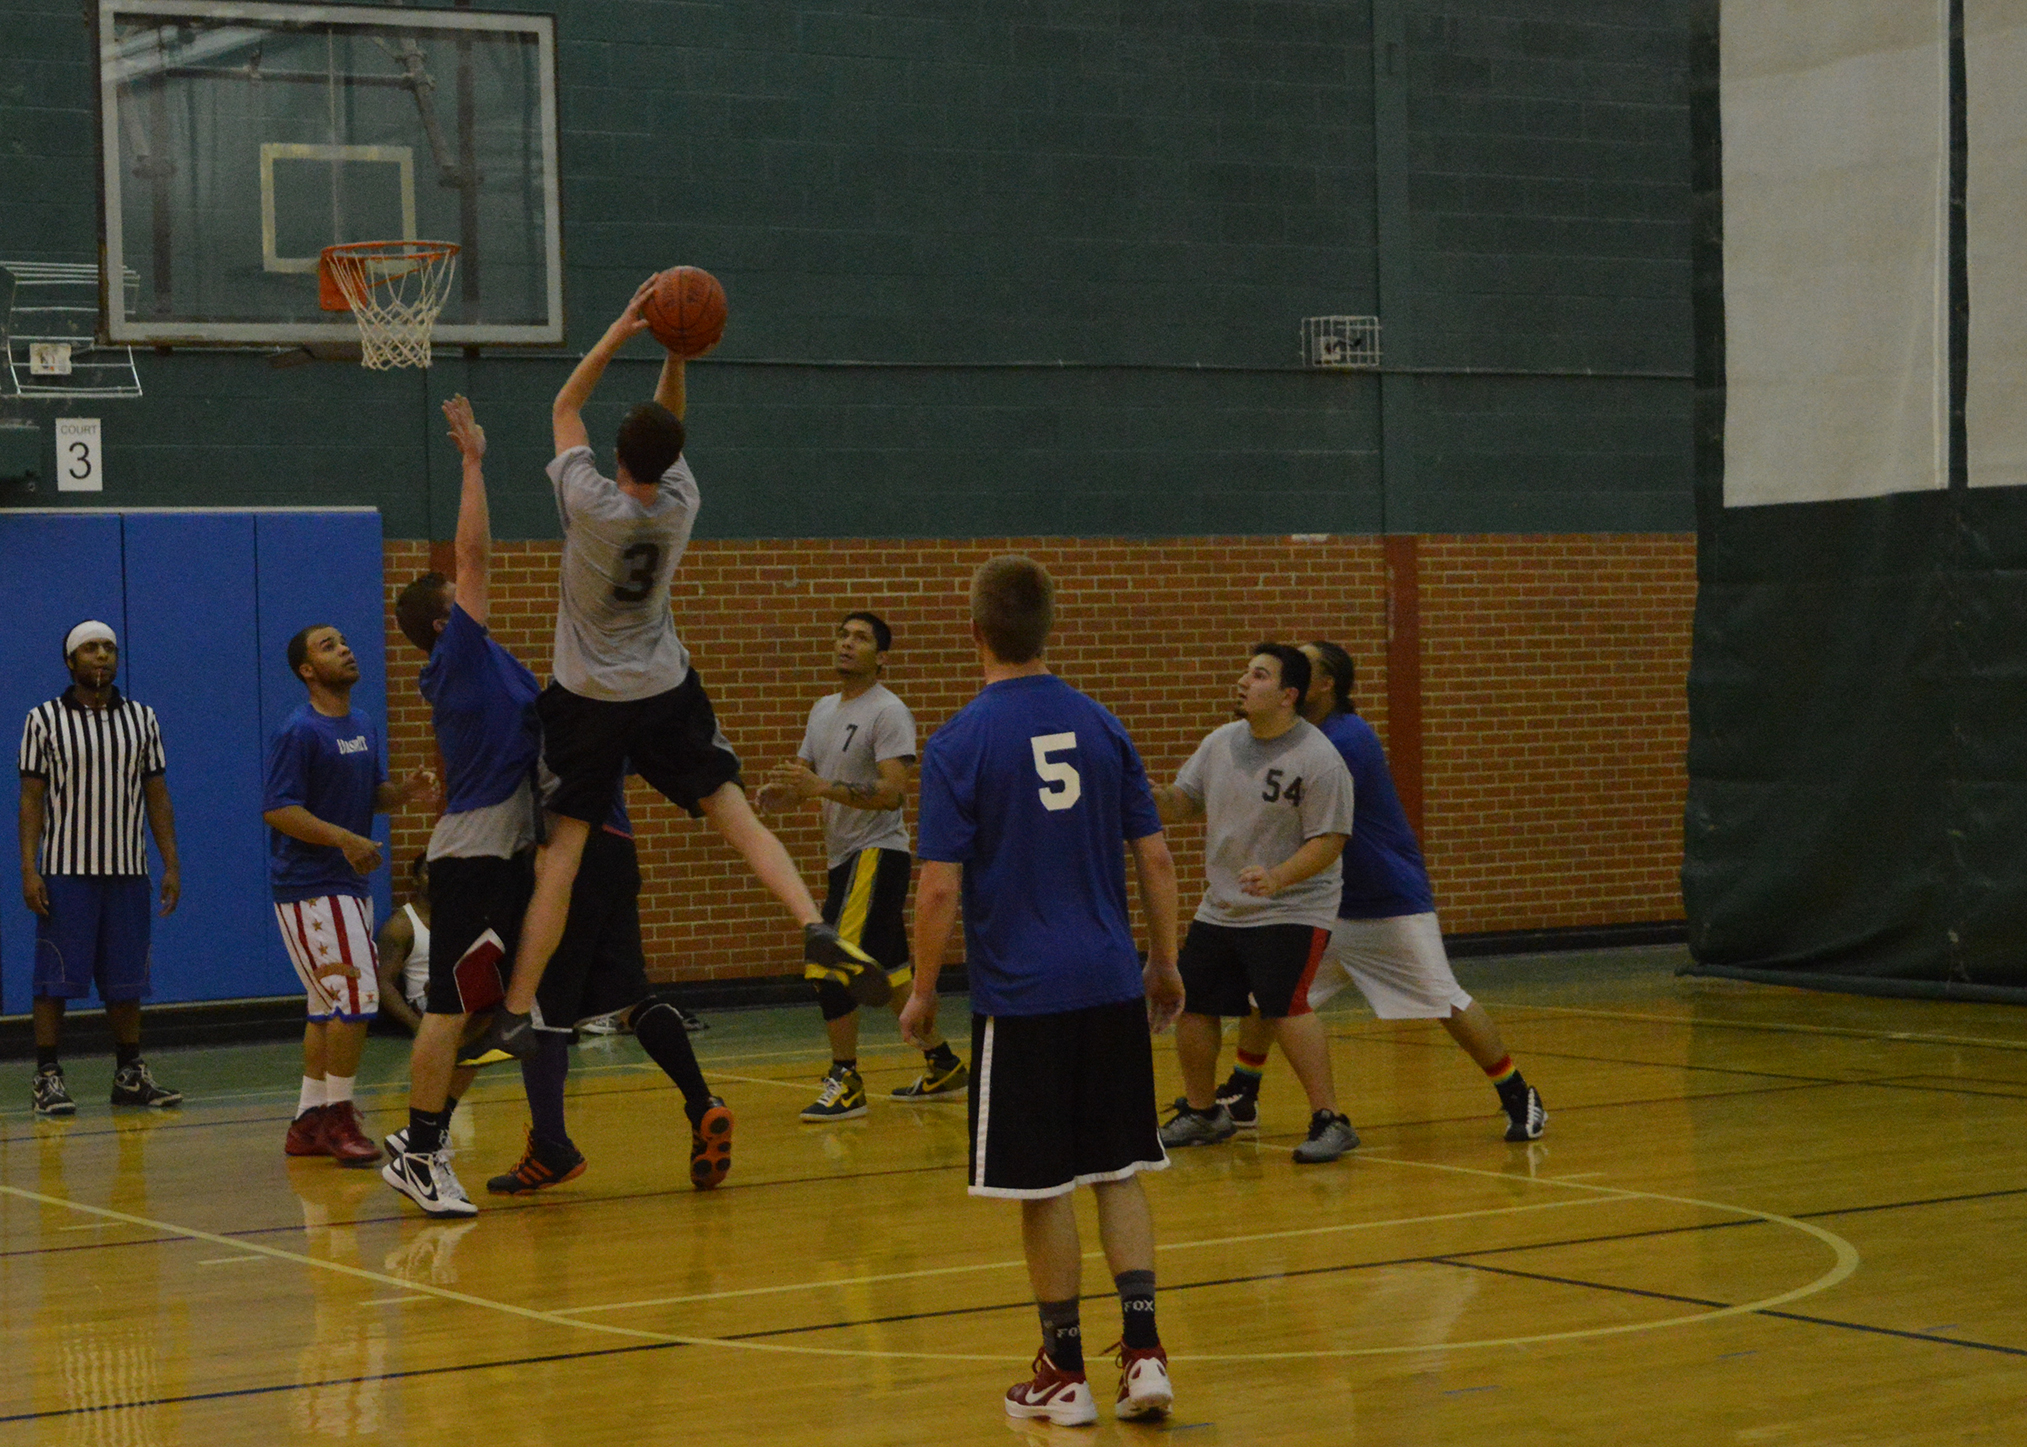 Photo by EDUARDO OLMOS | Team Dashit (blue) vs. Team Free Agents (grey). General studies major Jeremy Briscoe, #3 of Free Agents, attempts the shot at the Washington St Campus, Carter Fitness Center.